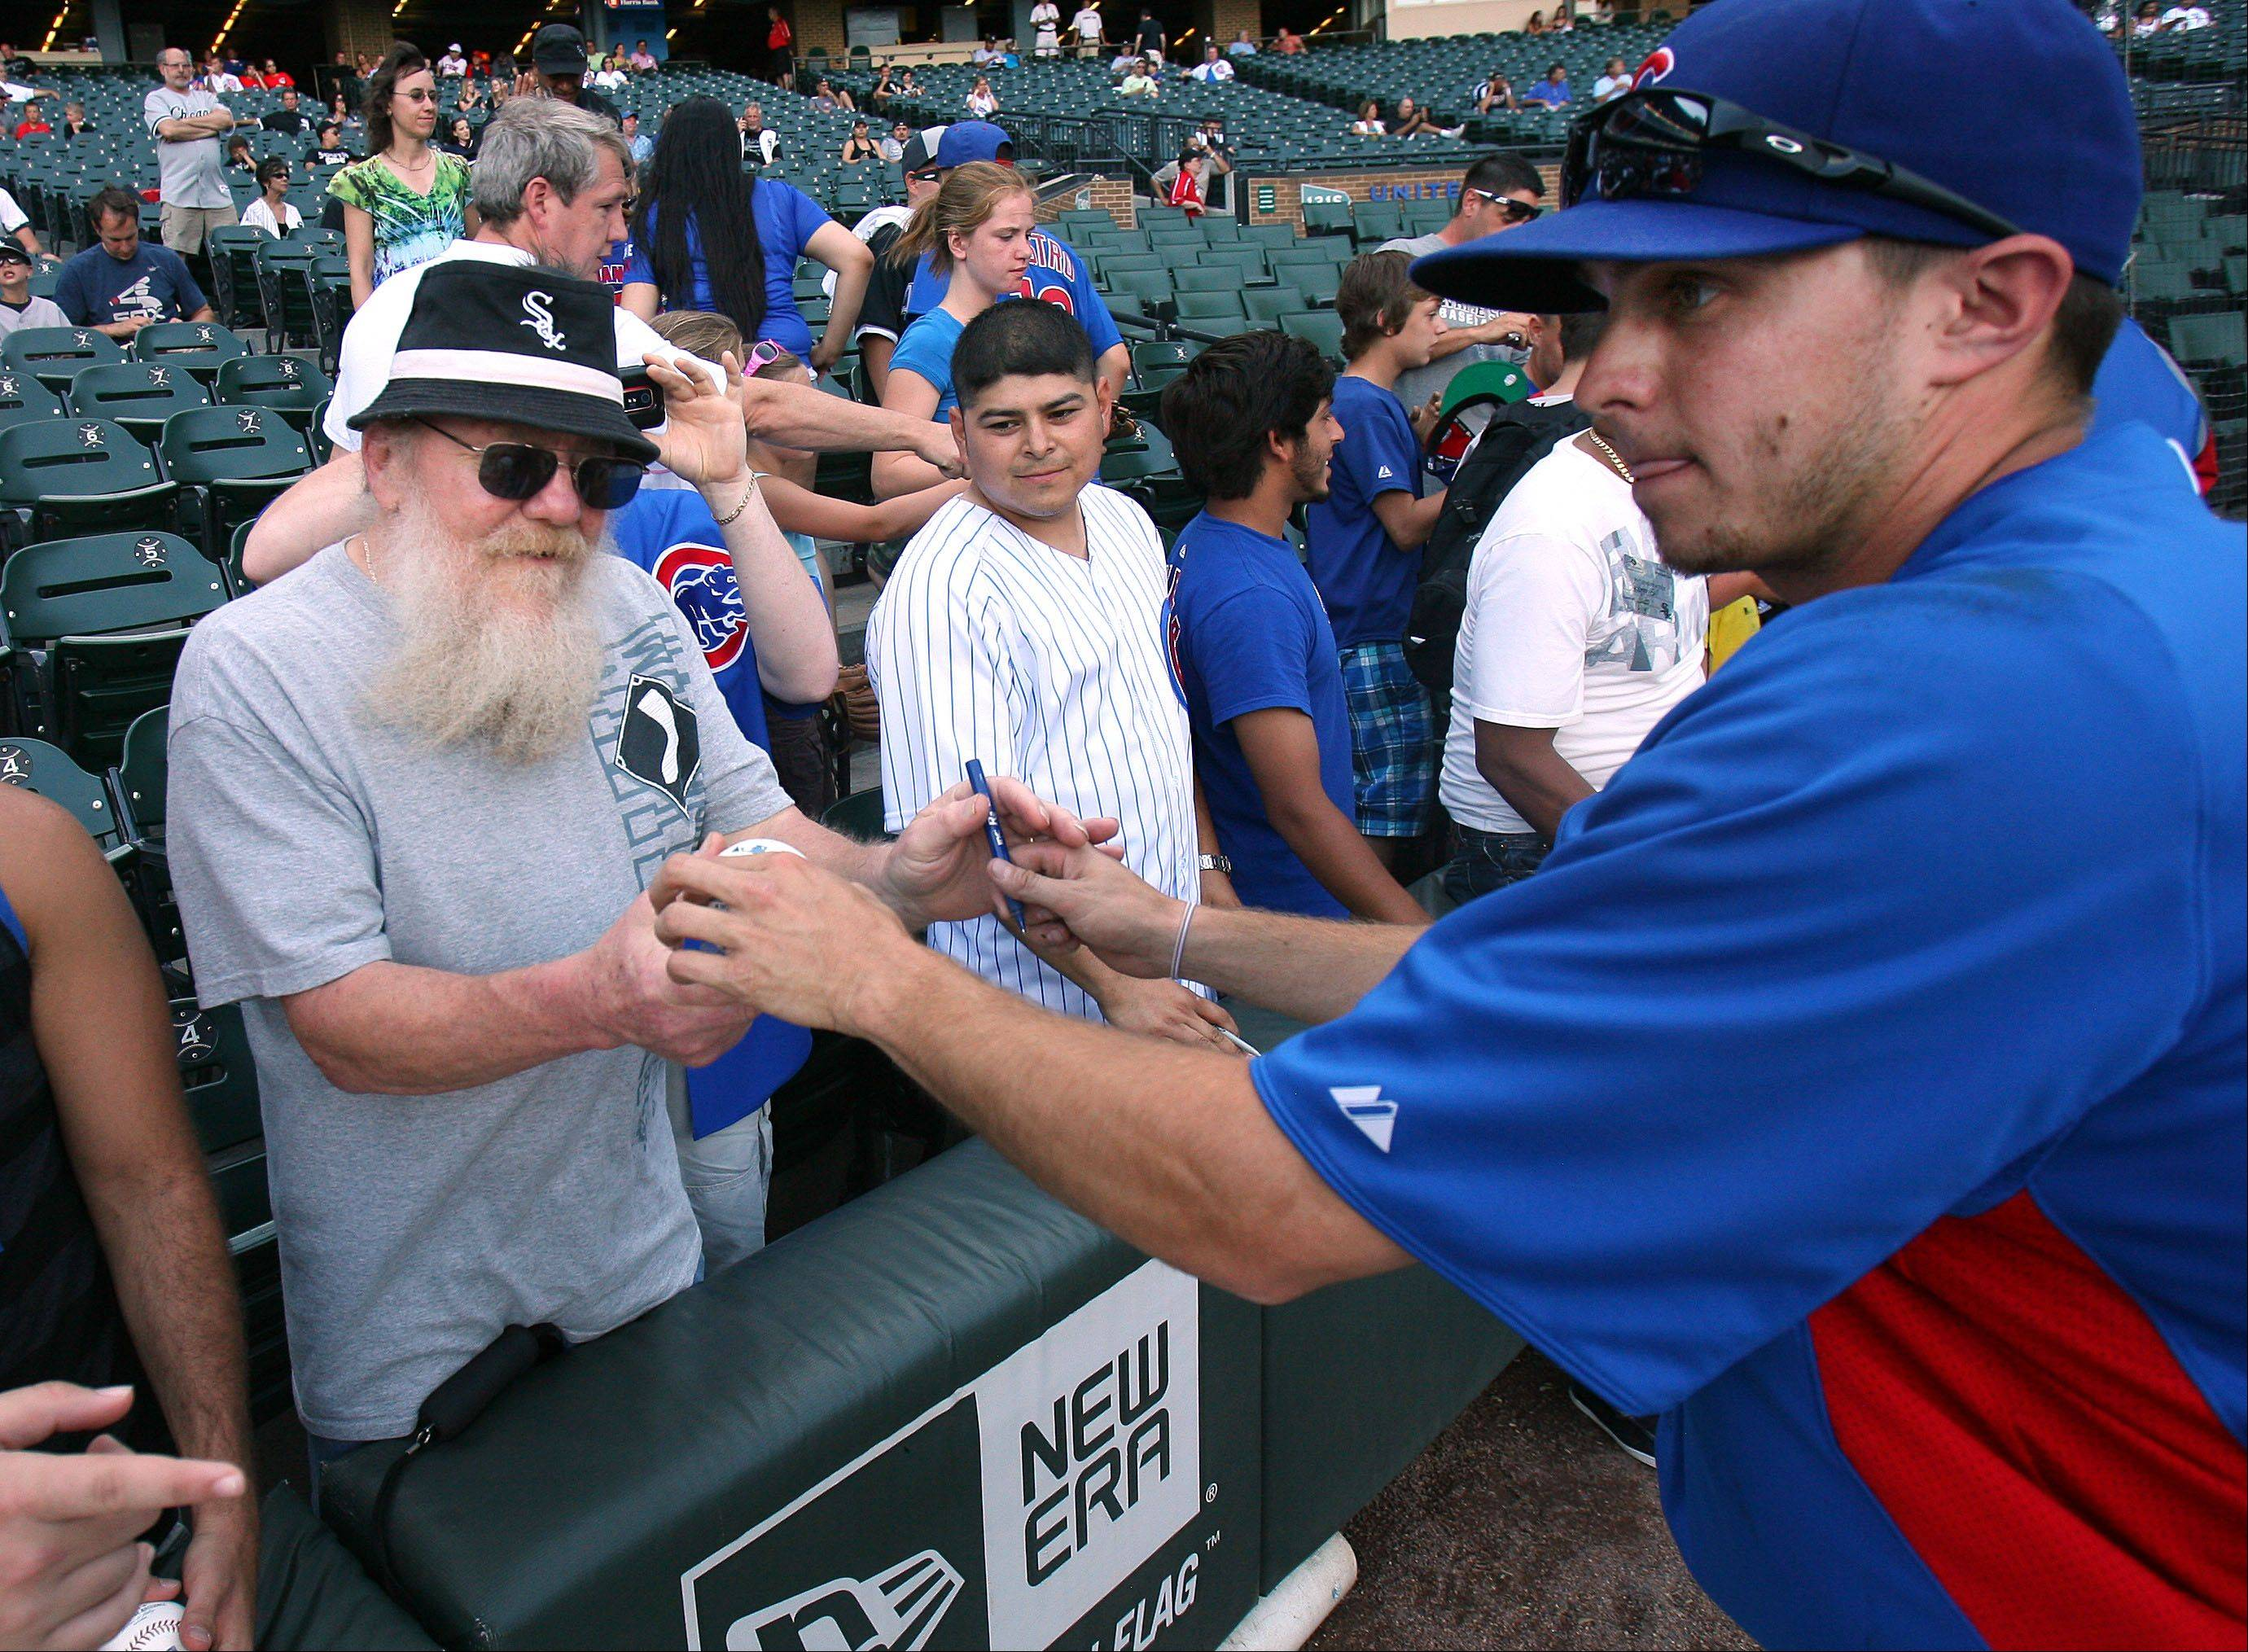 Sox fan Mike Fobes of Chicago gets a ball signed by Chicago Cubs' Tony Campana.